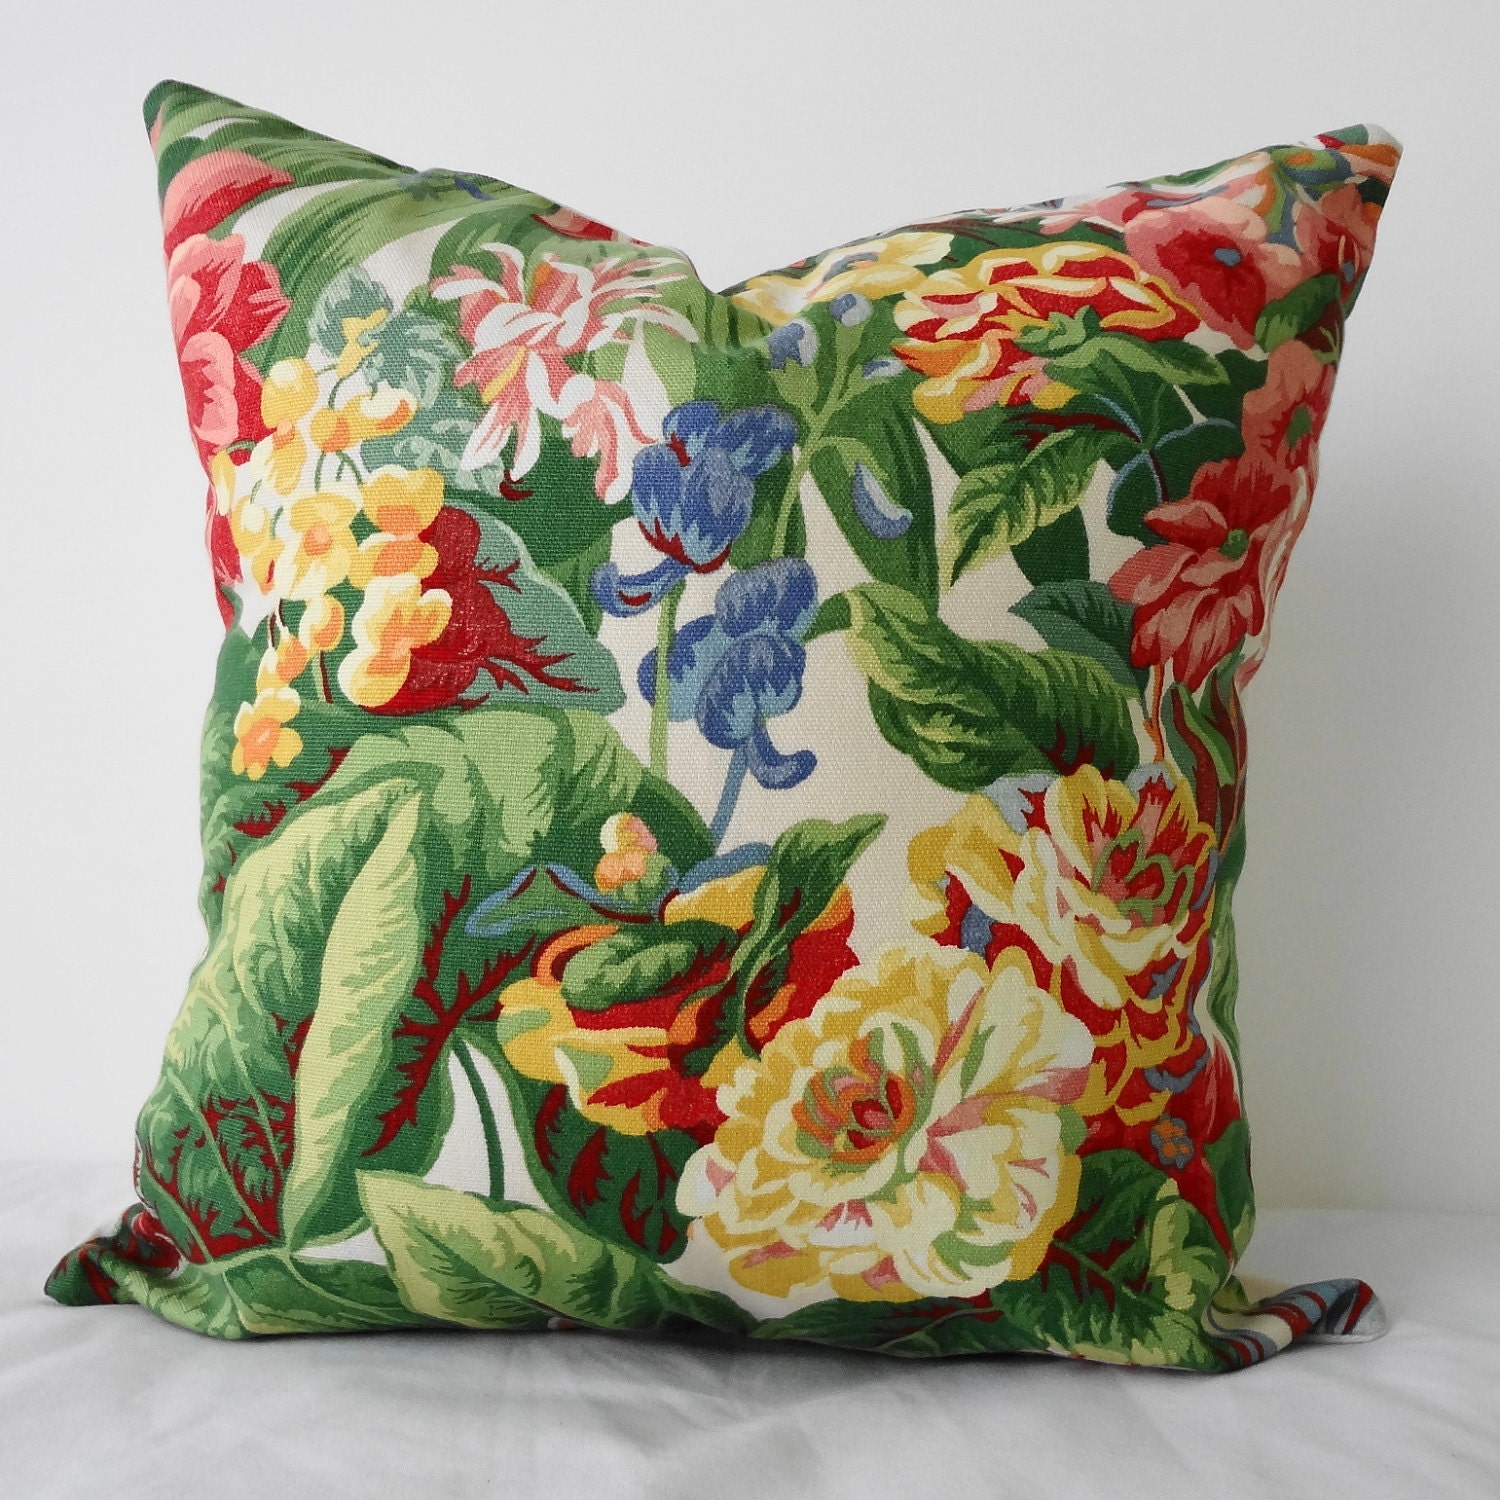 Etsy Decorative Throw Pillow : Floral Print Decorative Throw Pillow Cover Green by pillows4fun